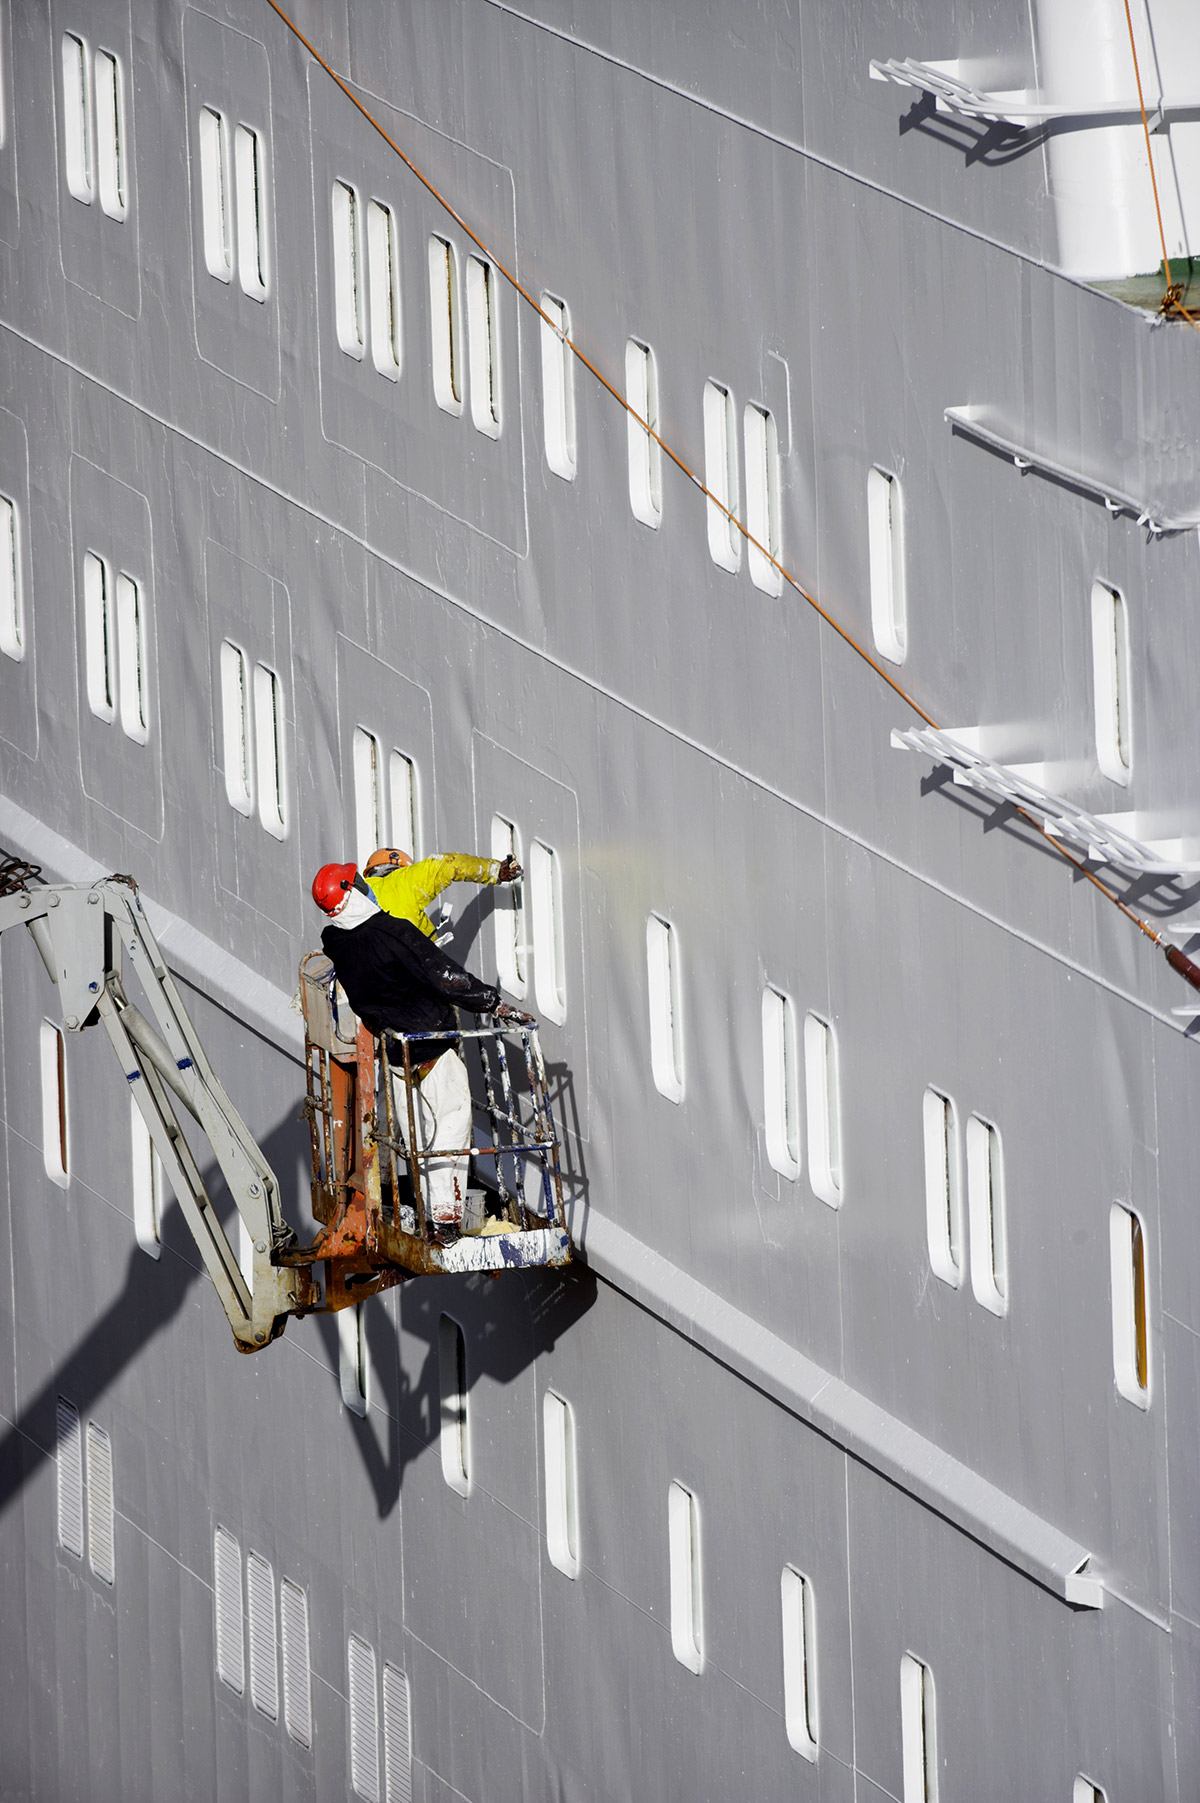 Painting of cruise vessel after low pressure washing